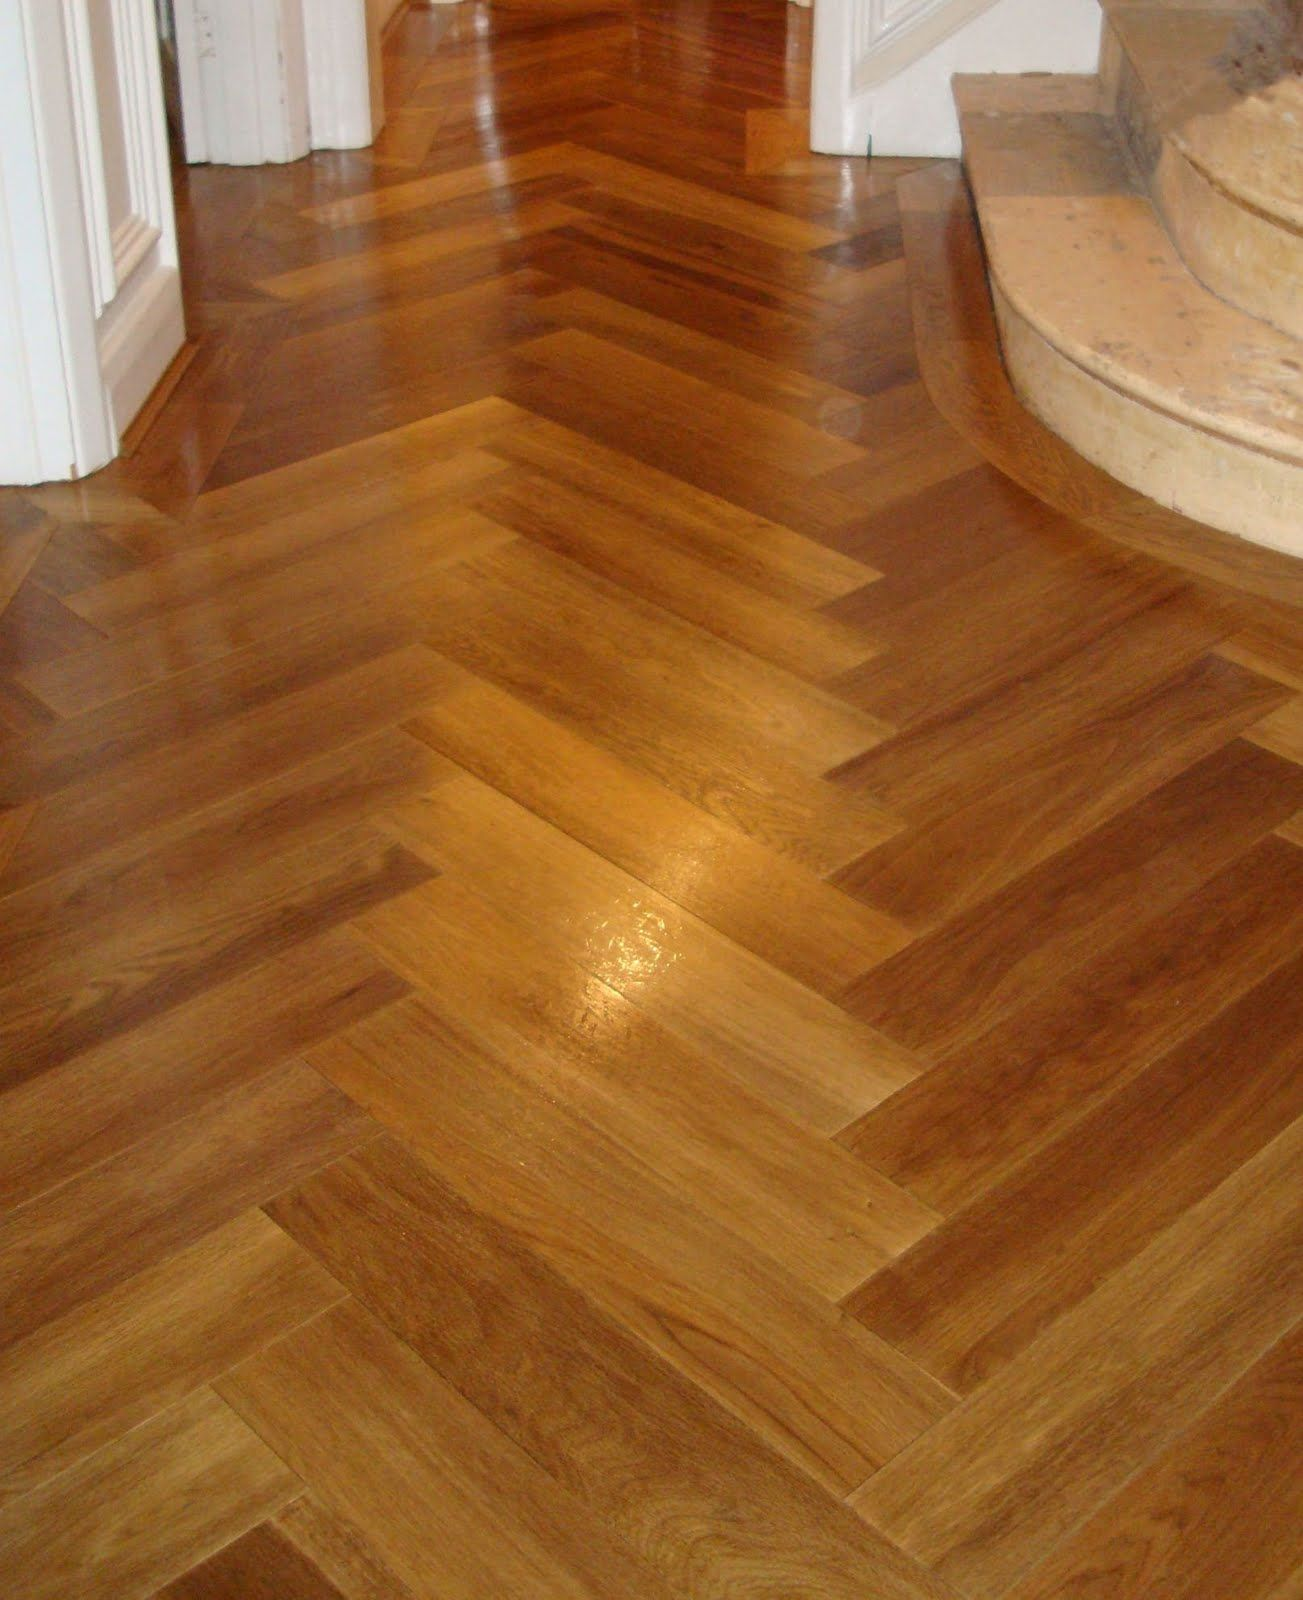 wood flooring ideas  Wood FloorWood Floor DesignWood